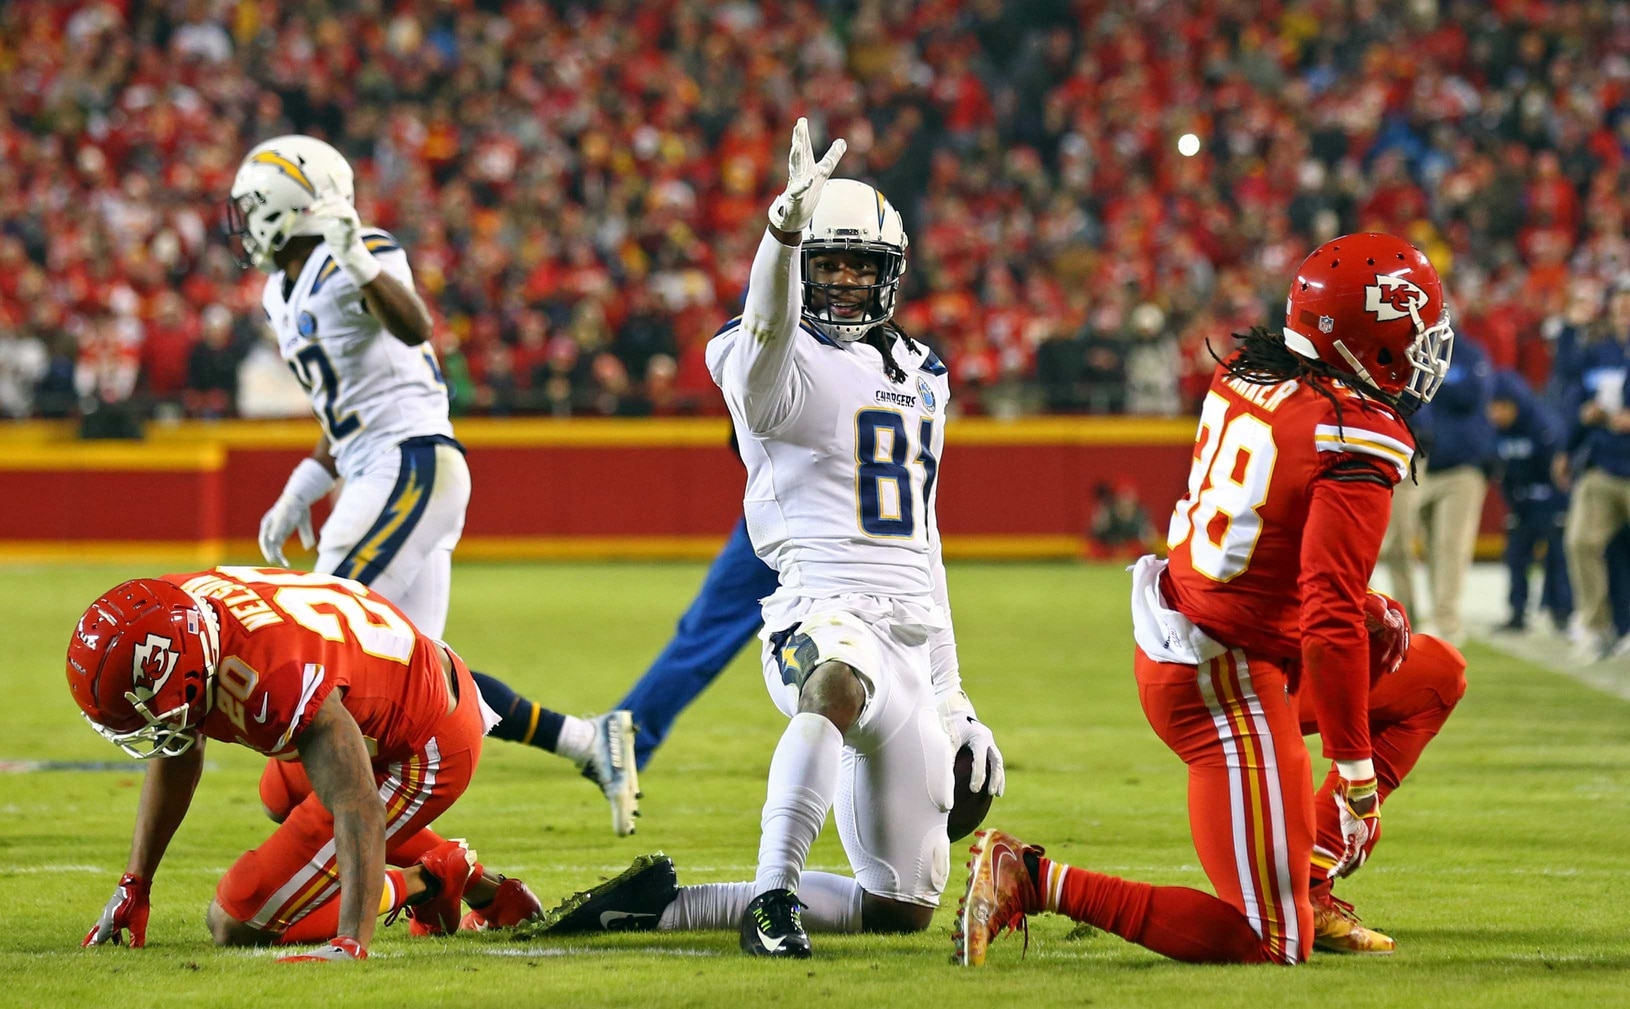 WATCH: Chargers beat Chiefs with dramatic two-point play in final seconds